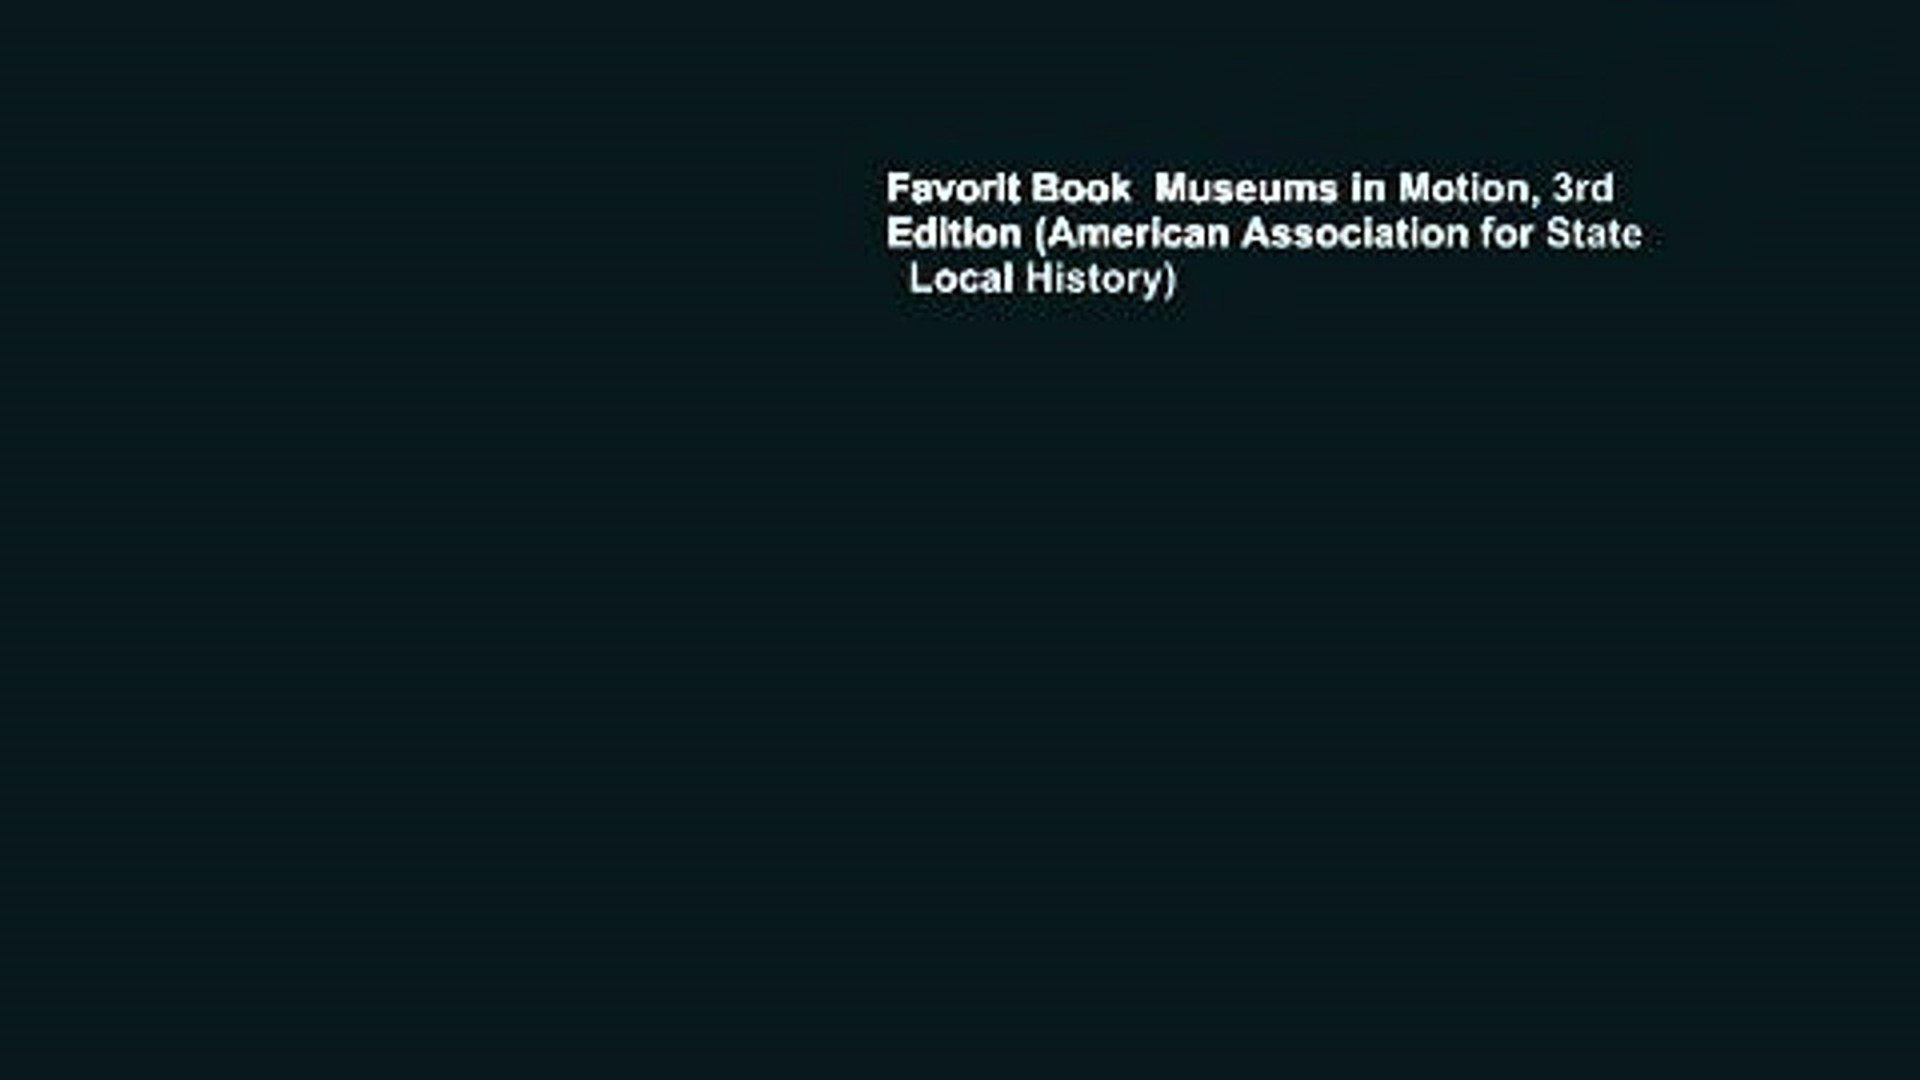 7ff81a7d2b32 Favorit Book Museums in Motion, 3rd Edition (American Association for State  Local History)